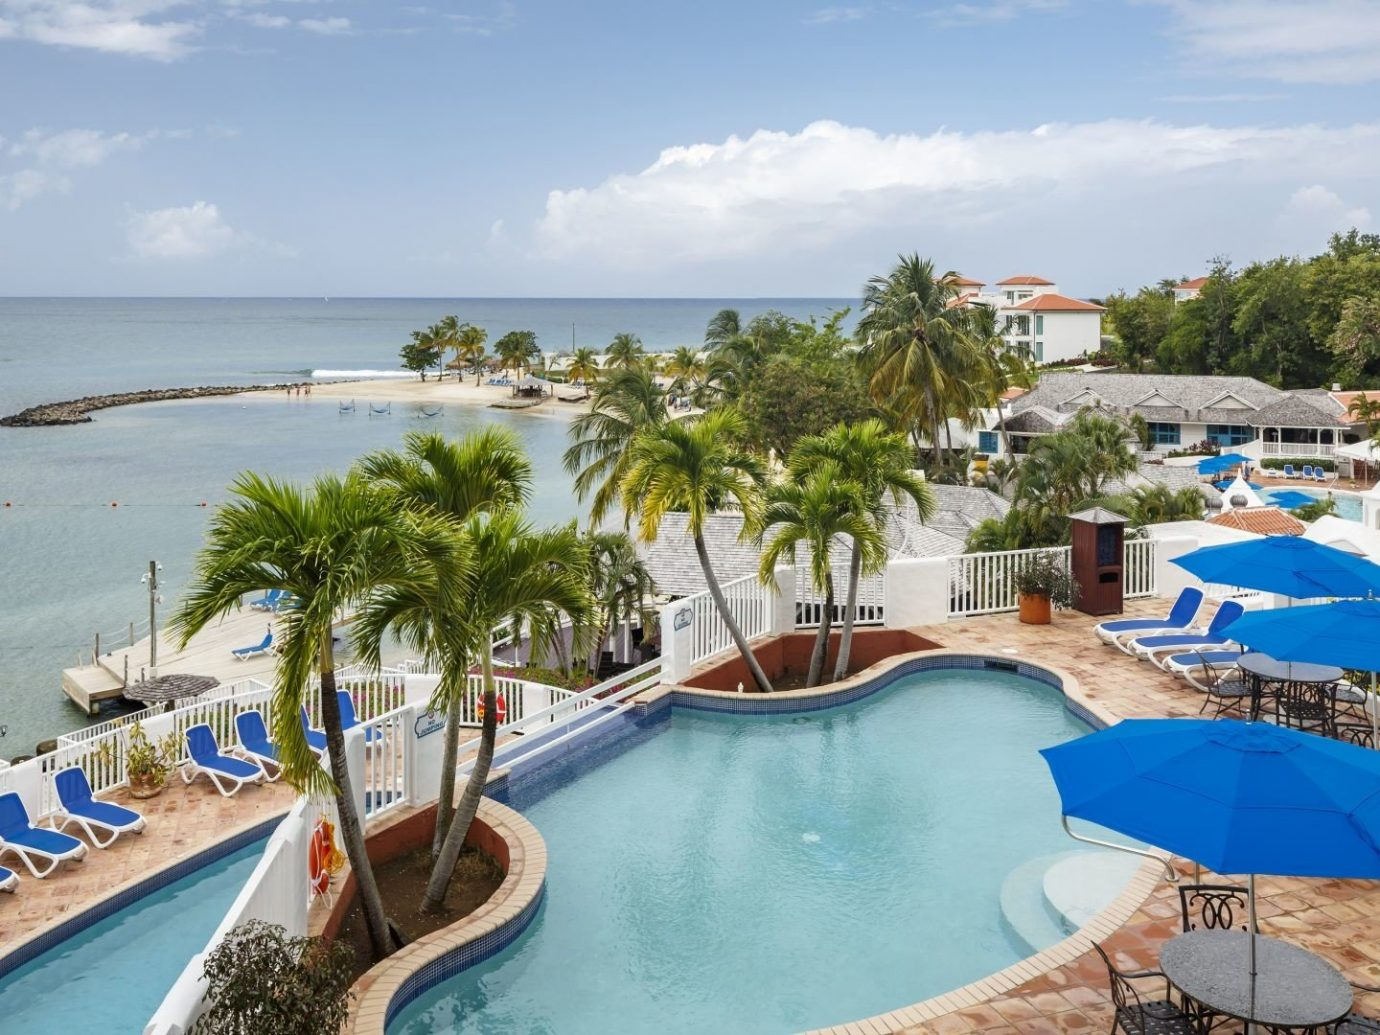 All-Inclusive Resorts Budget Hotels Resort property leisure swimming pool tourism real estate resort town vacation caribbean Sea palm tree bay coastal and oceanic landforms arecales tropics estate Coast Lagoon tree sky recreation